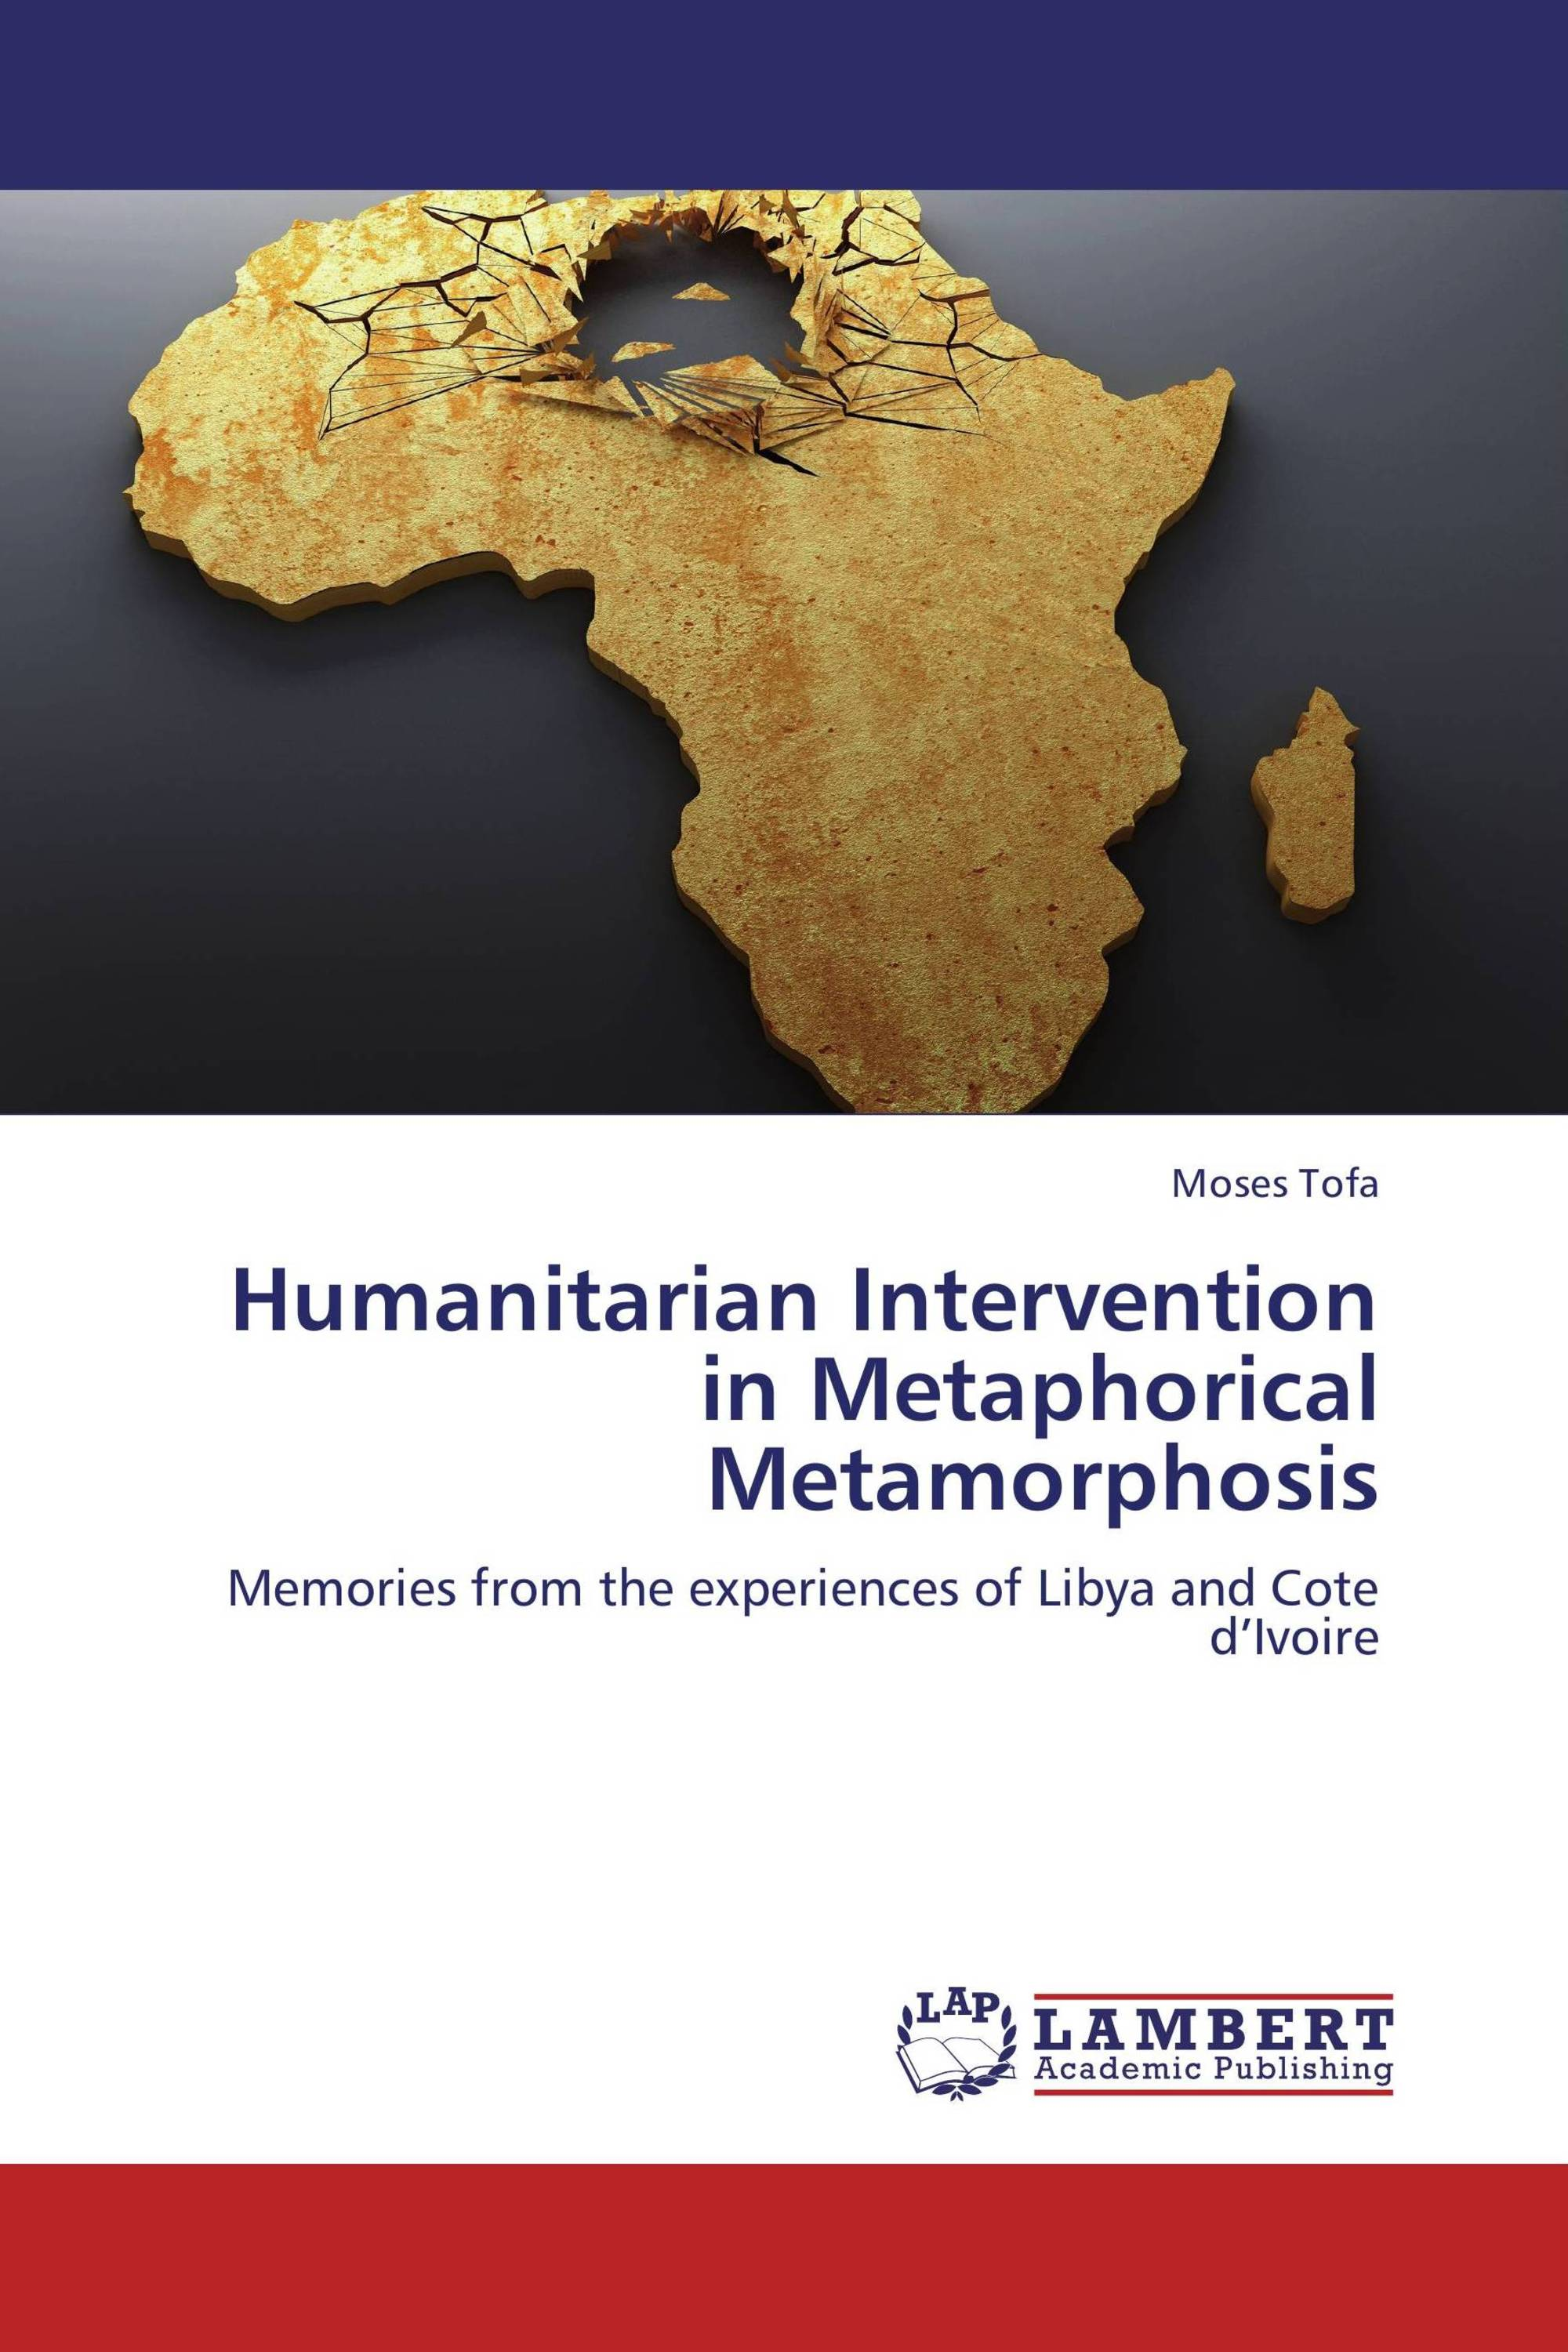 Dissertation overview on humanitarian intervention